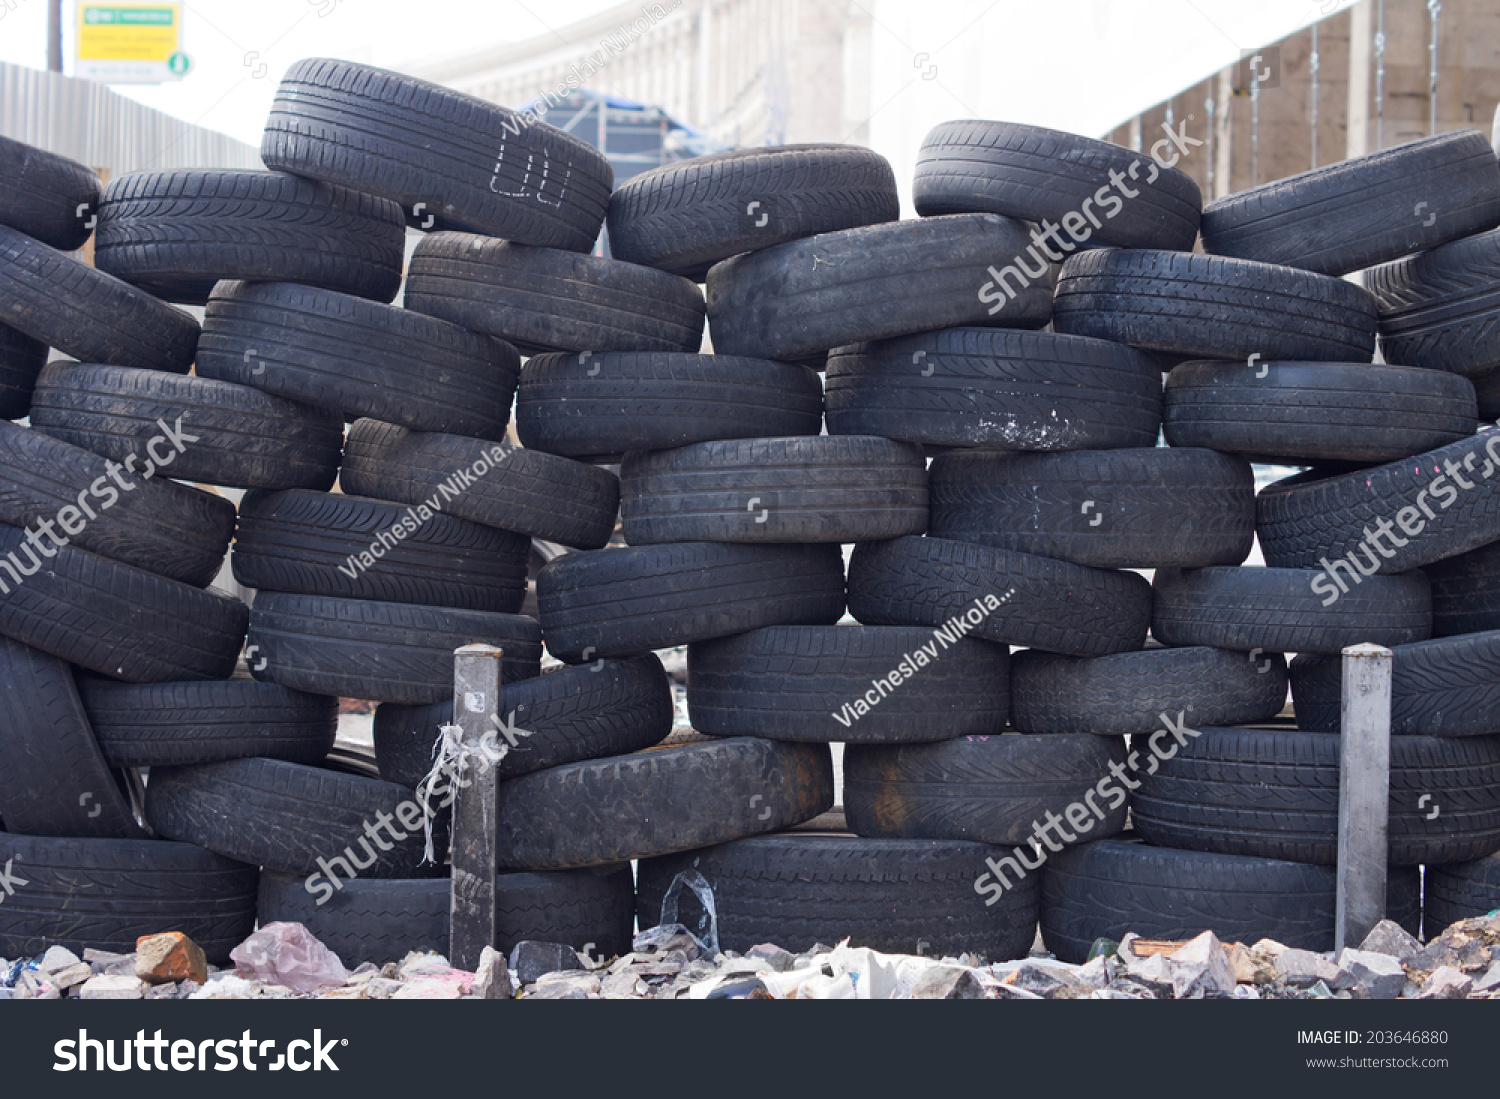 Old tires stacked to form a barricade or wall at a fairground to provide a safety feature for participants on rides and amusements #203646880